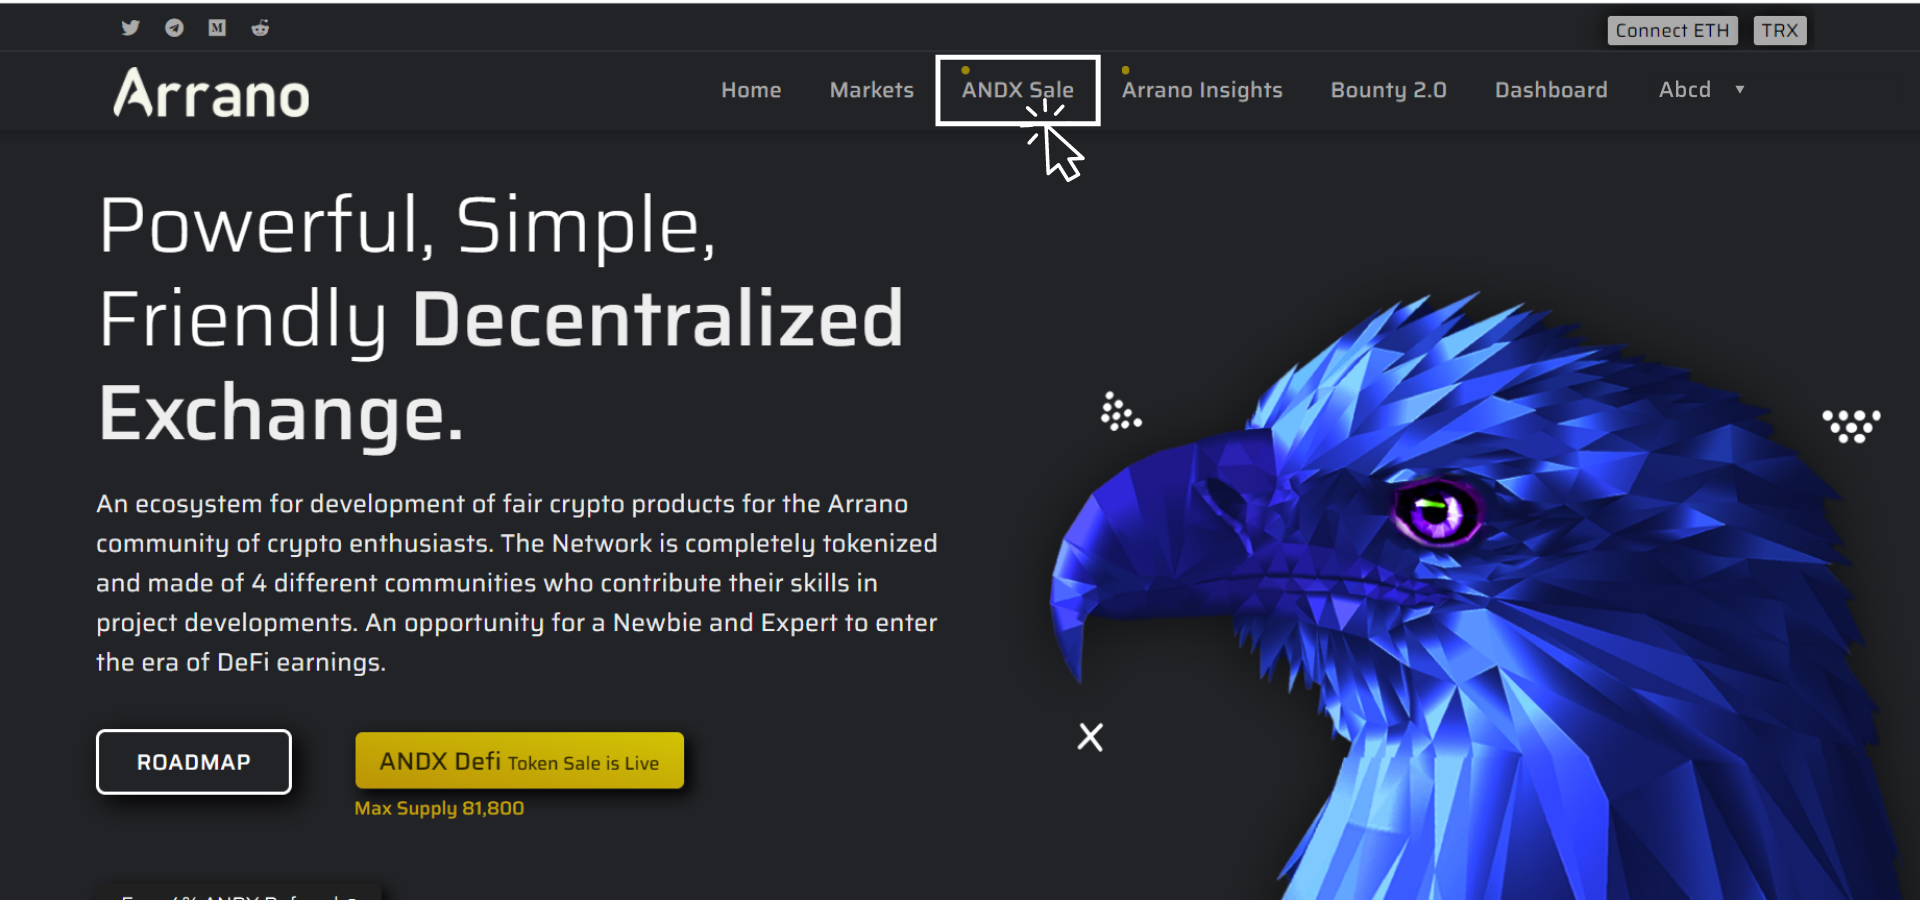 Arrano Network Review, ANDX Token Price, Airdrop & Details